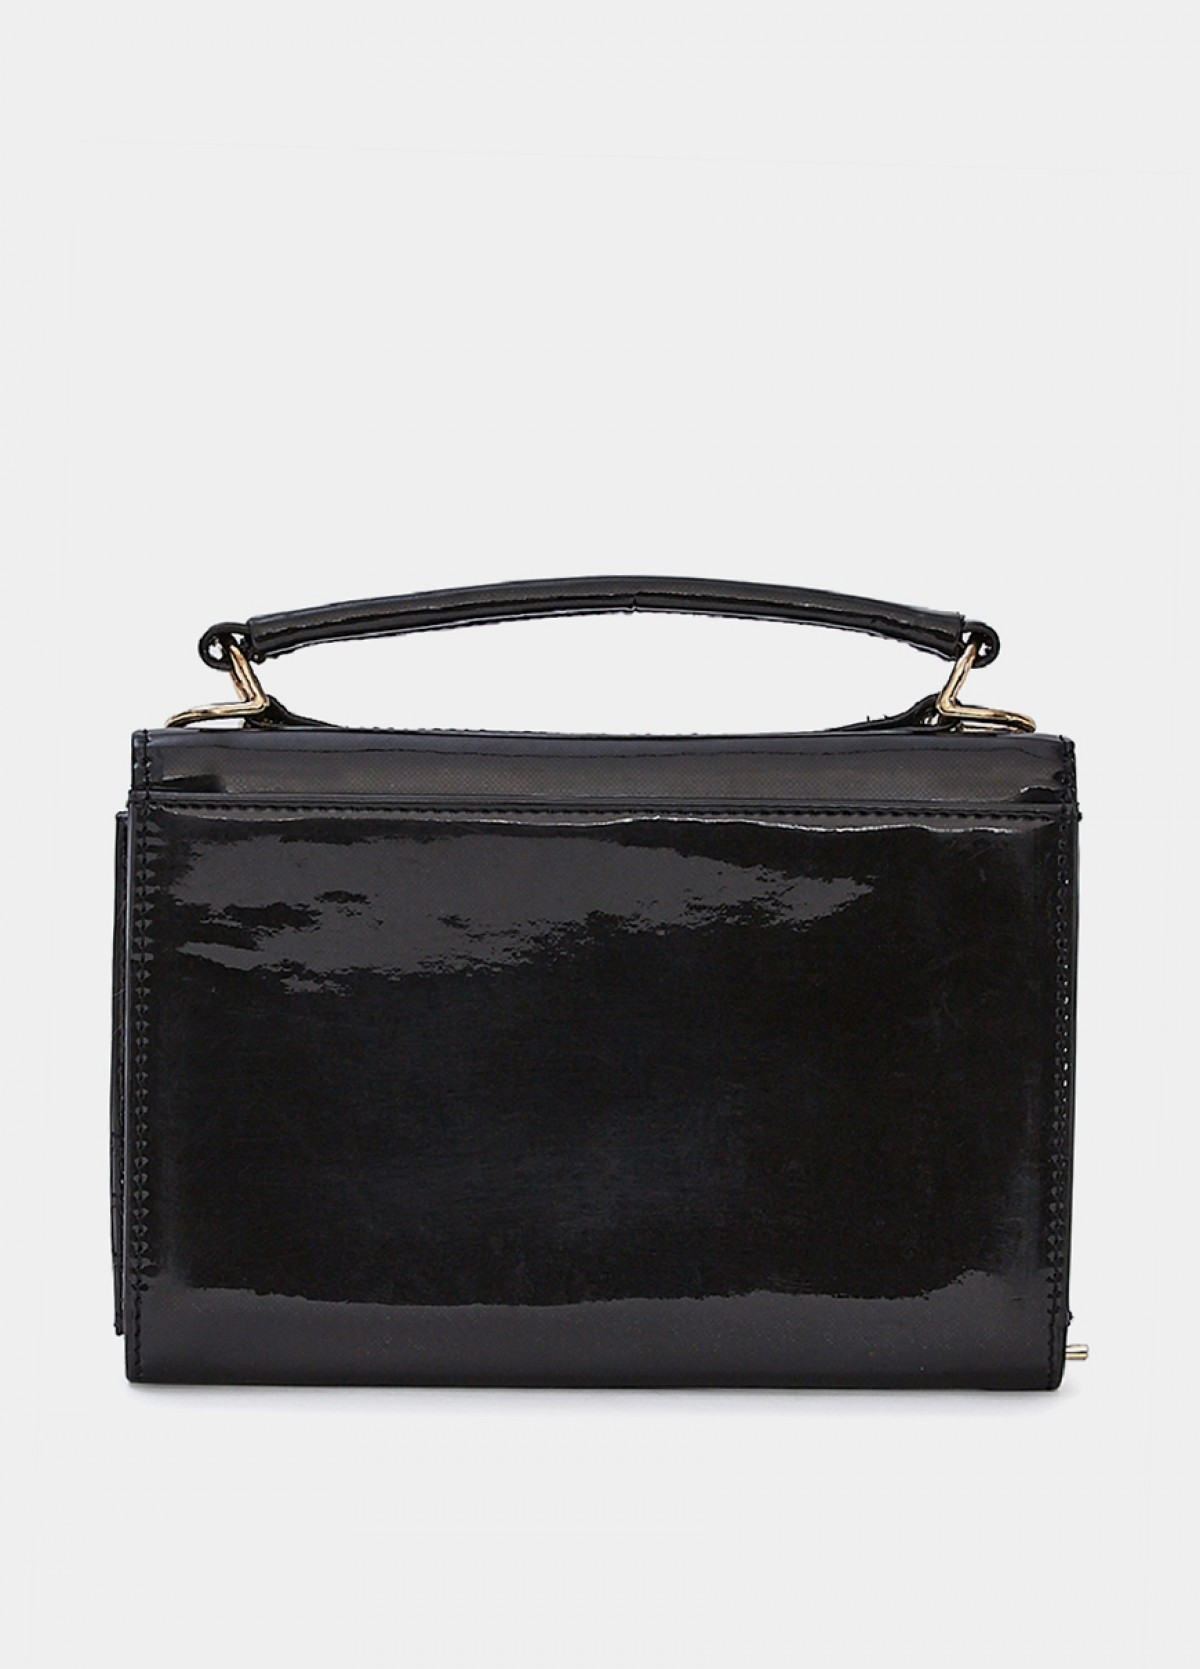 The Black Party Clutch